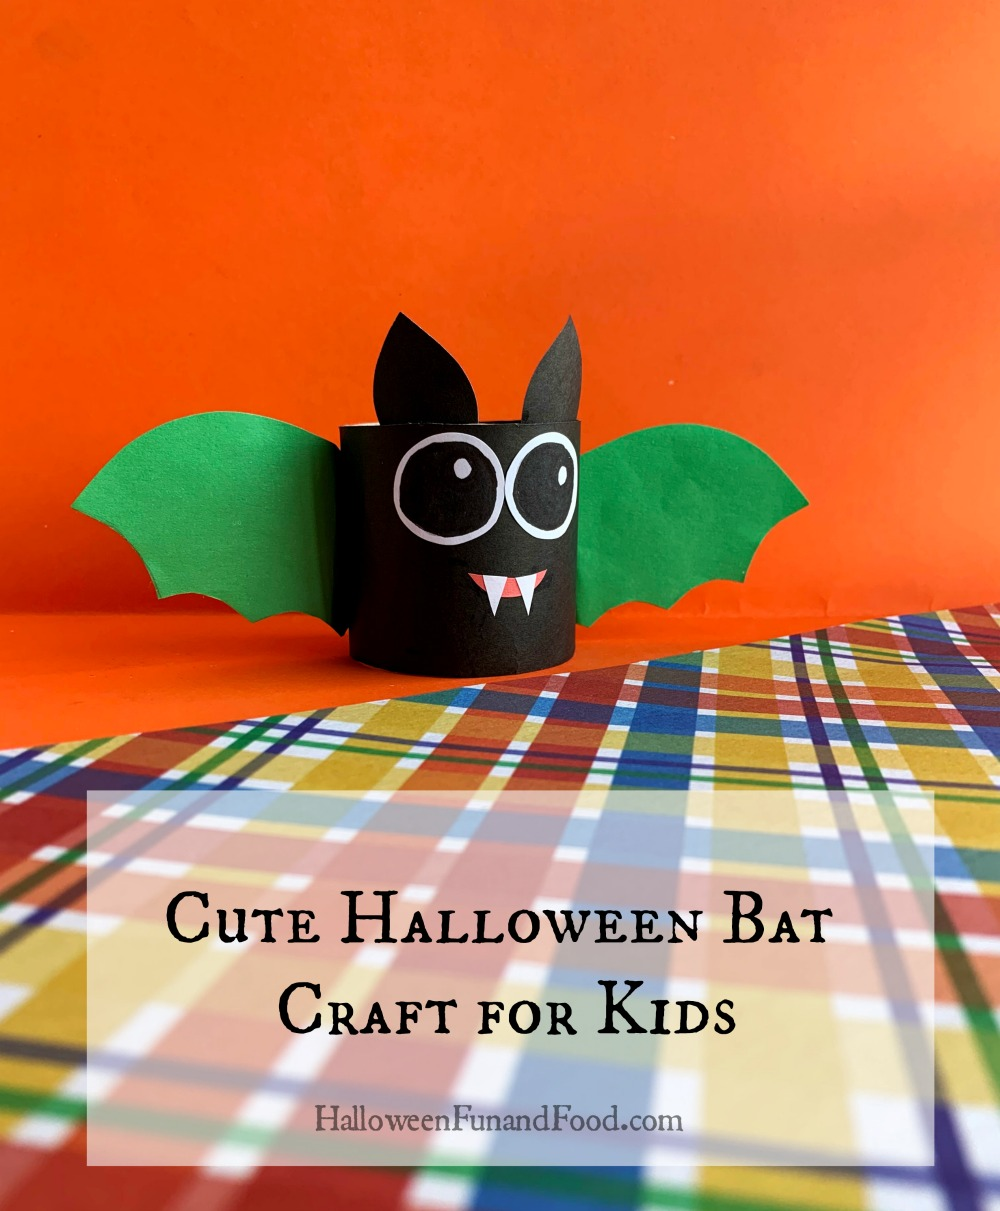 Instructions on how to make a cute Halloween bat craft for kids.